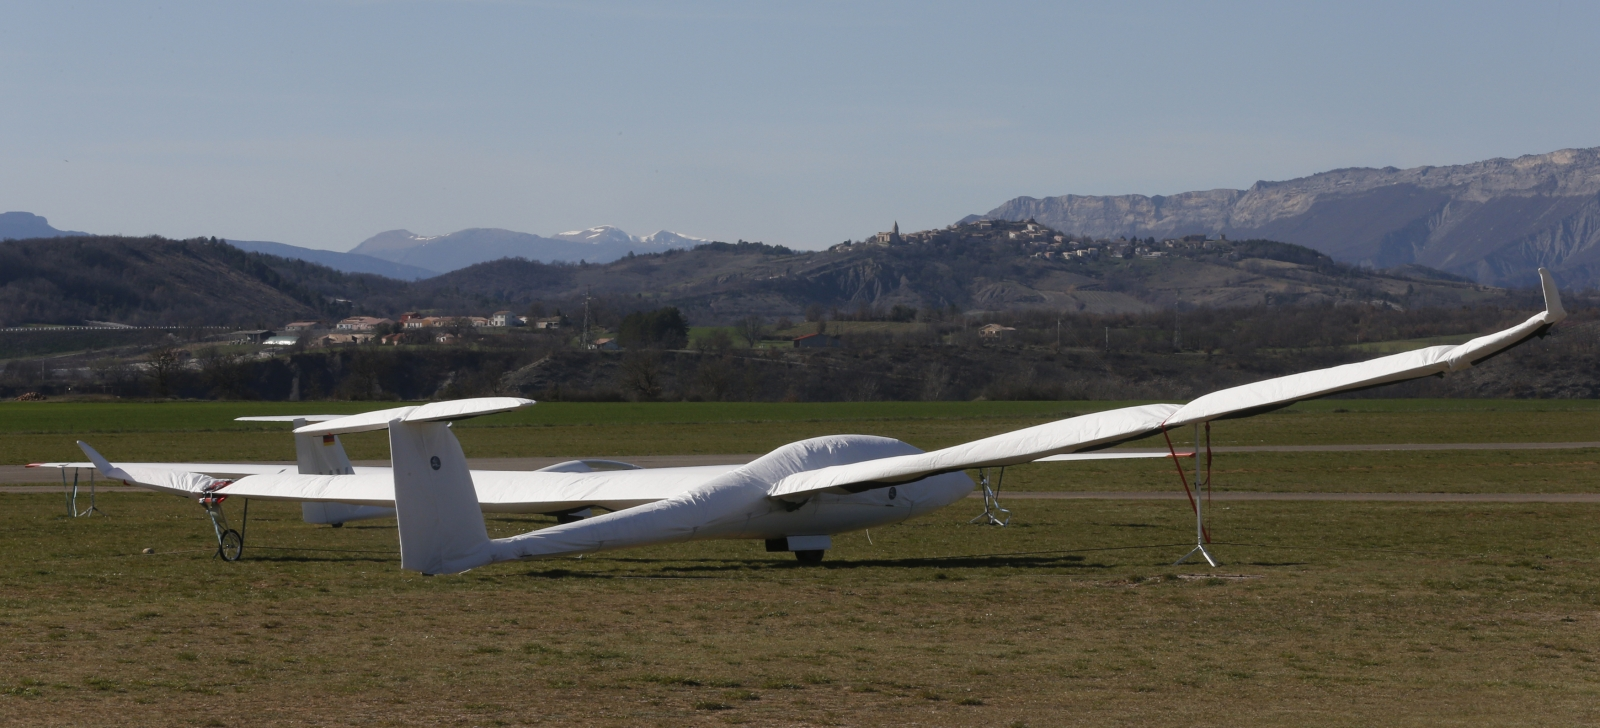 Glider dies after colliding with aircraft